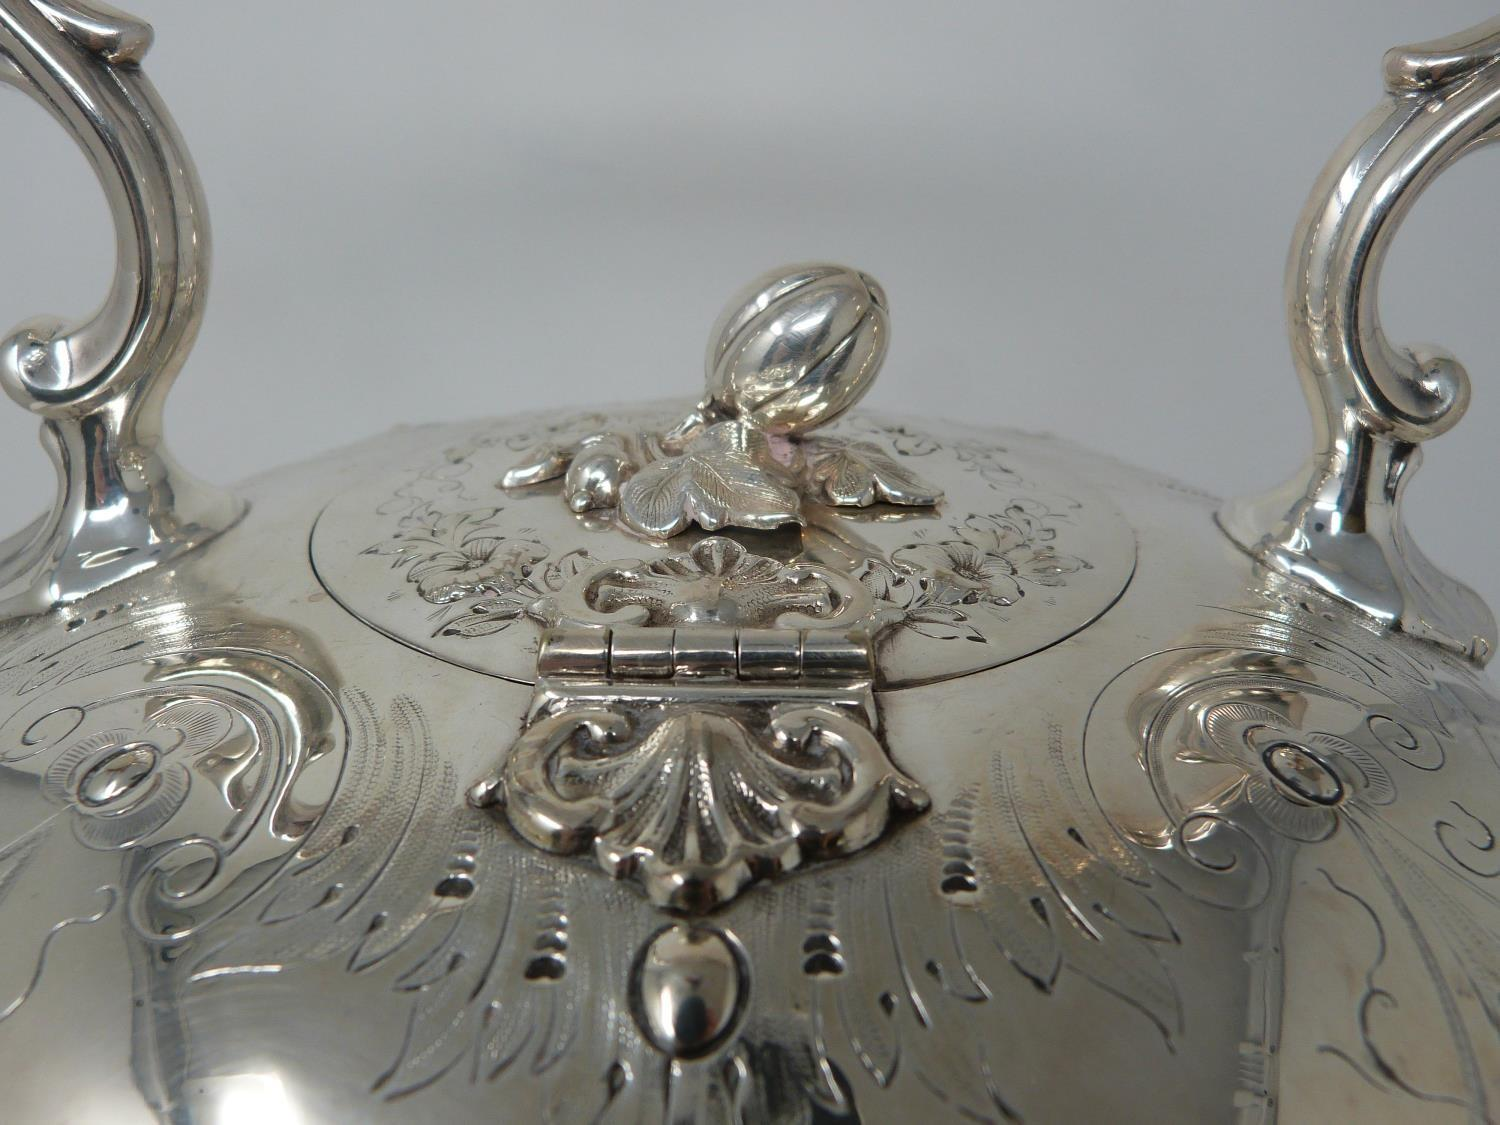 An antique white metal and ivory spirit kettle and stand. The kettle has a flower bud finial and - Image 10 of 17